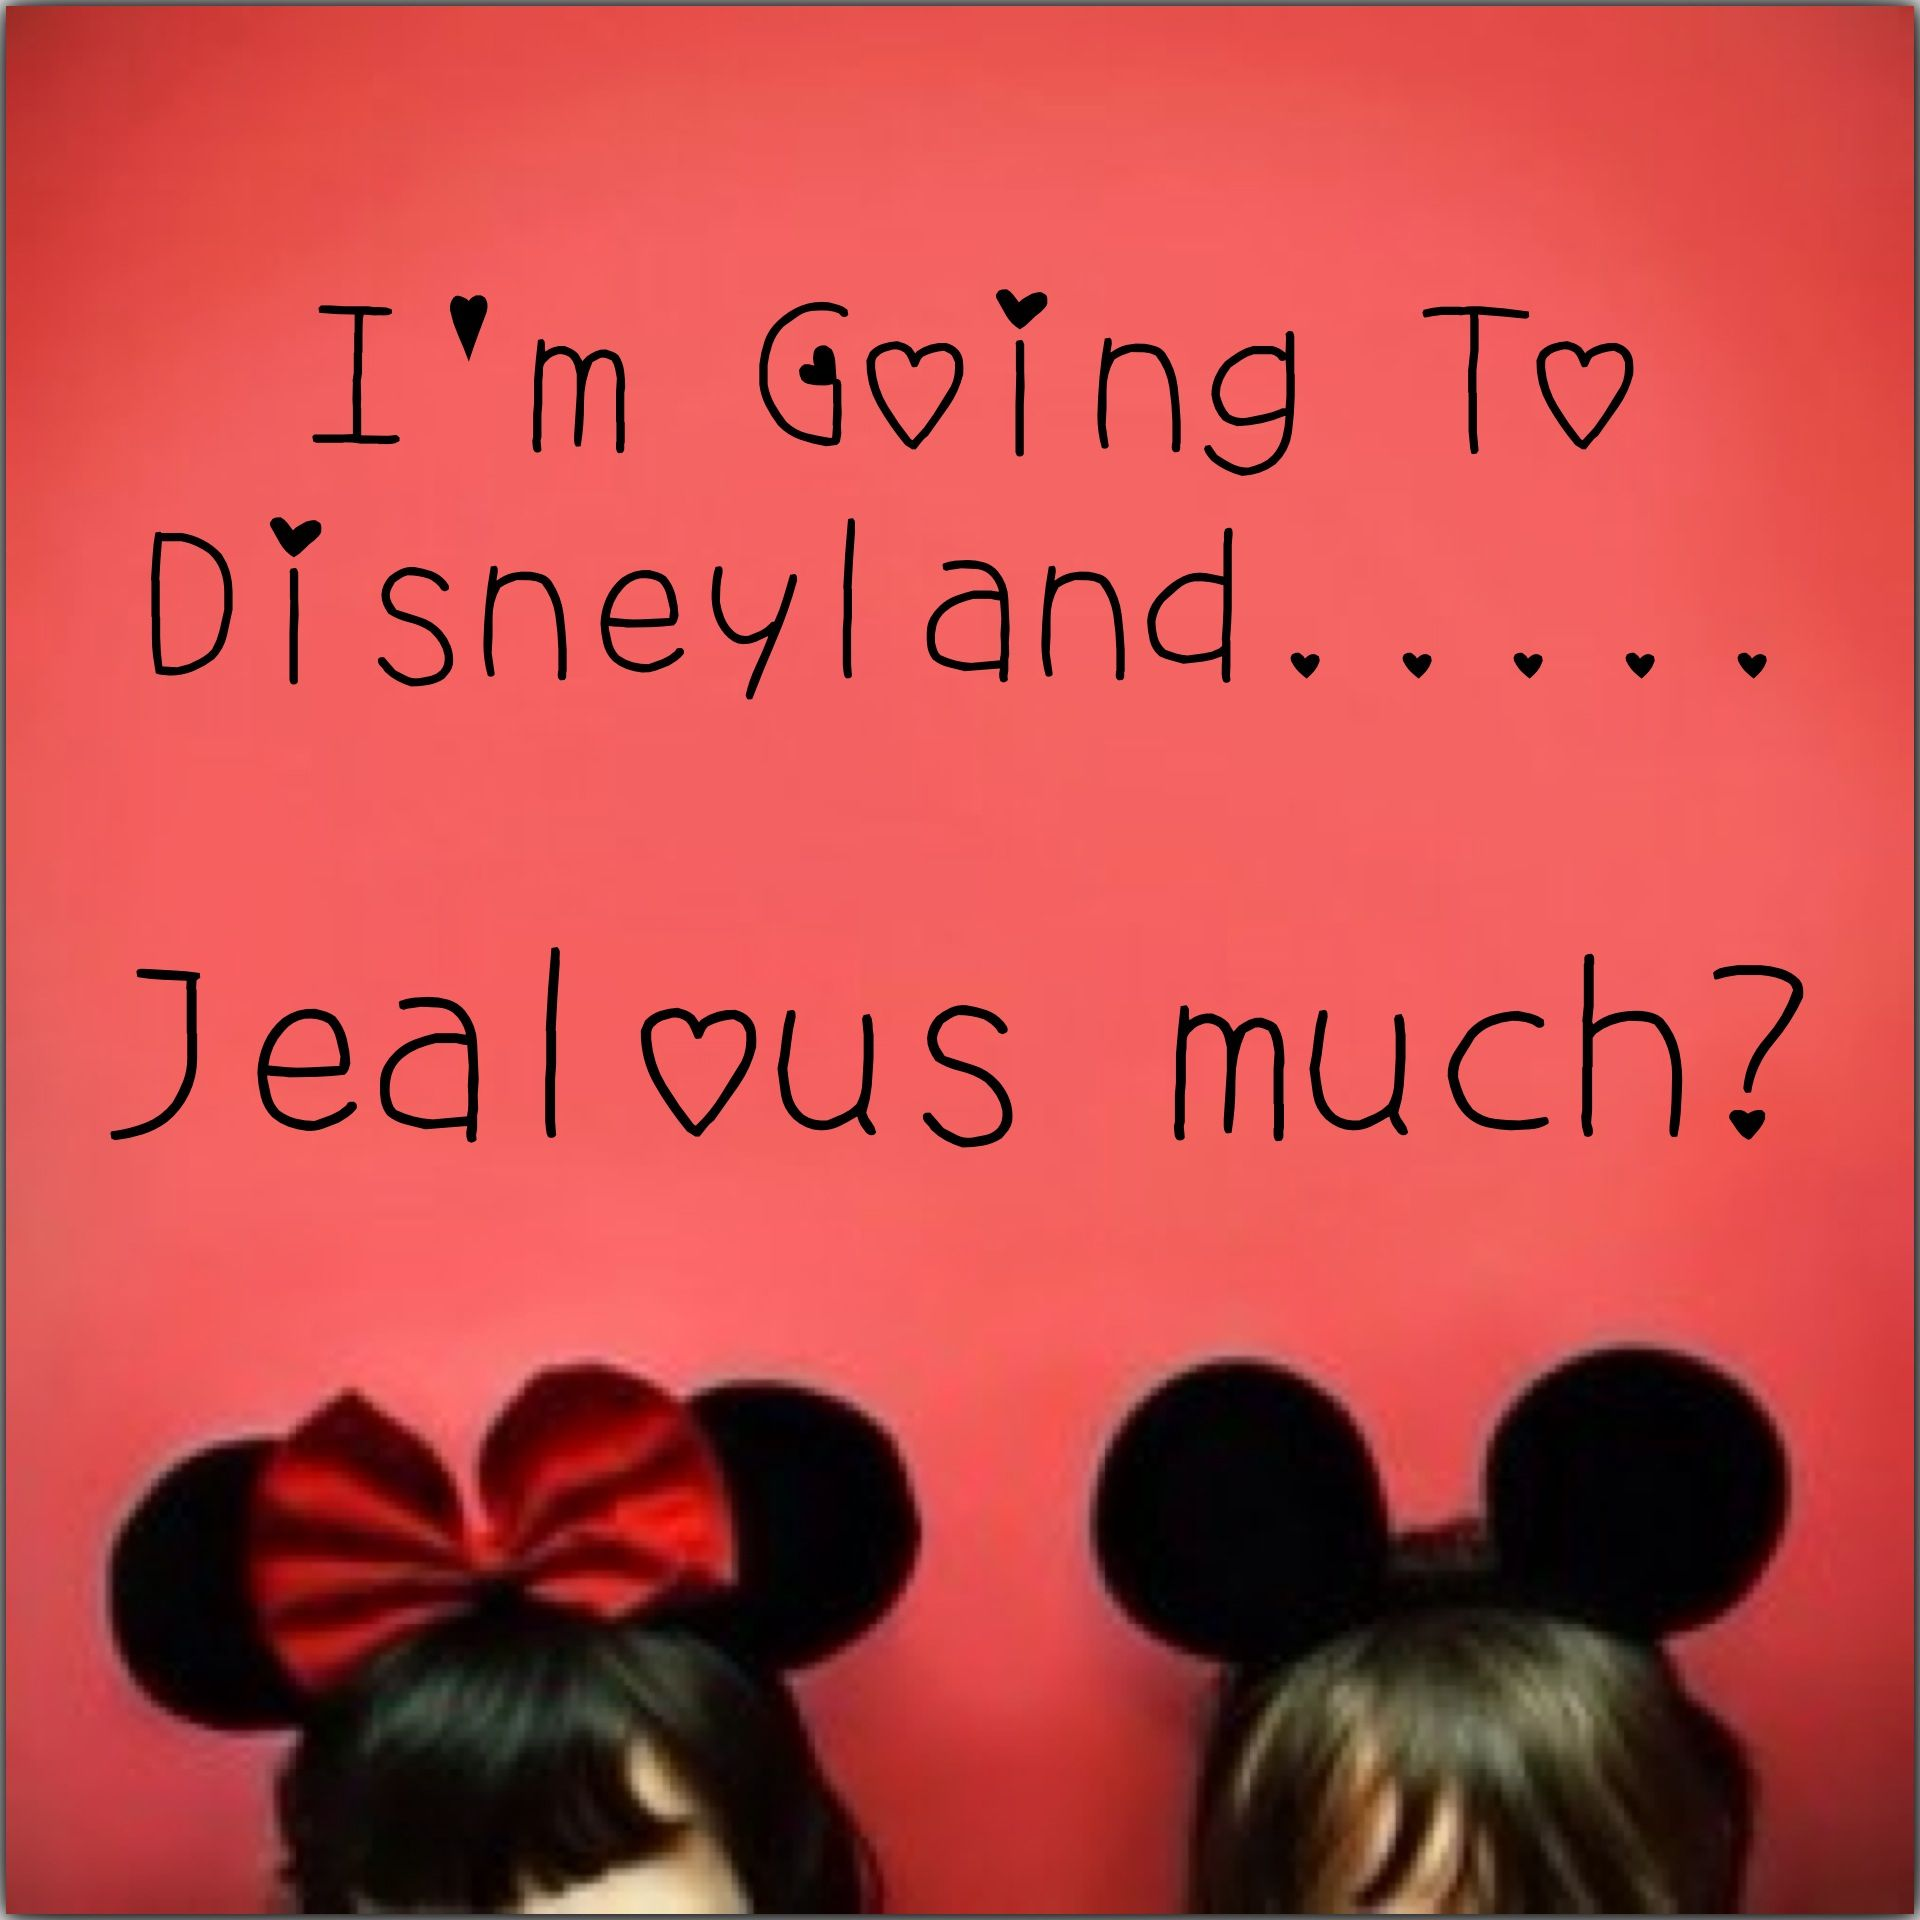 I'm going to Disneyland jealous much | my favorites ...